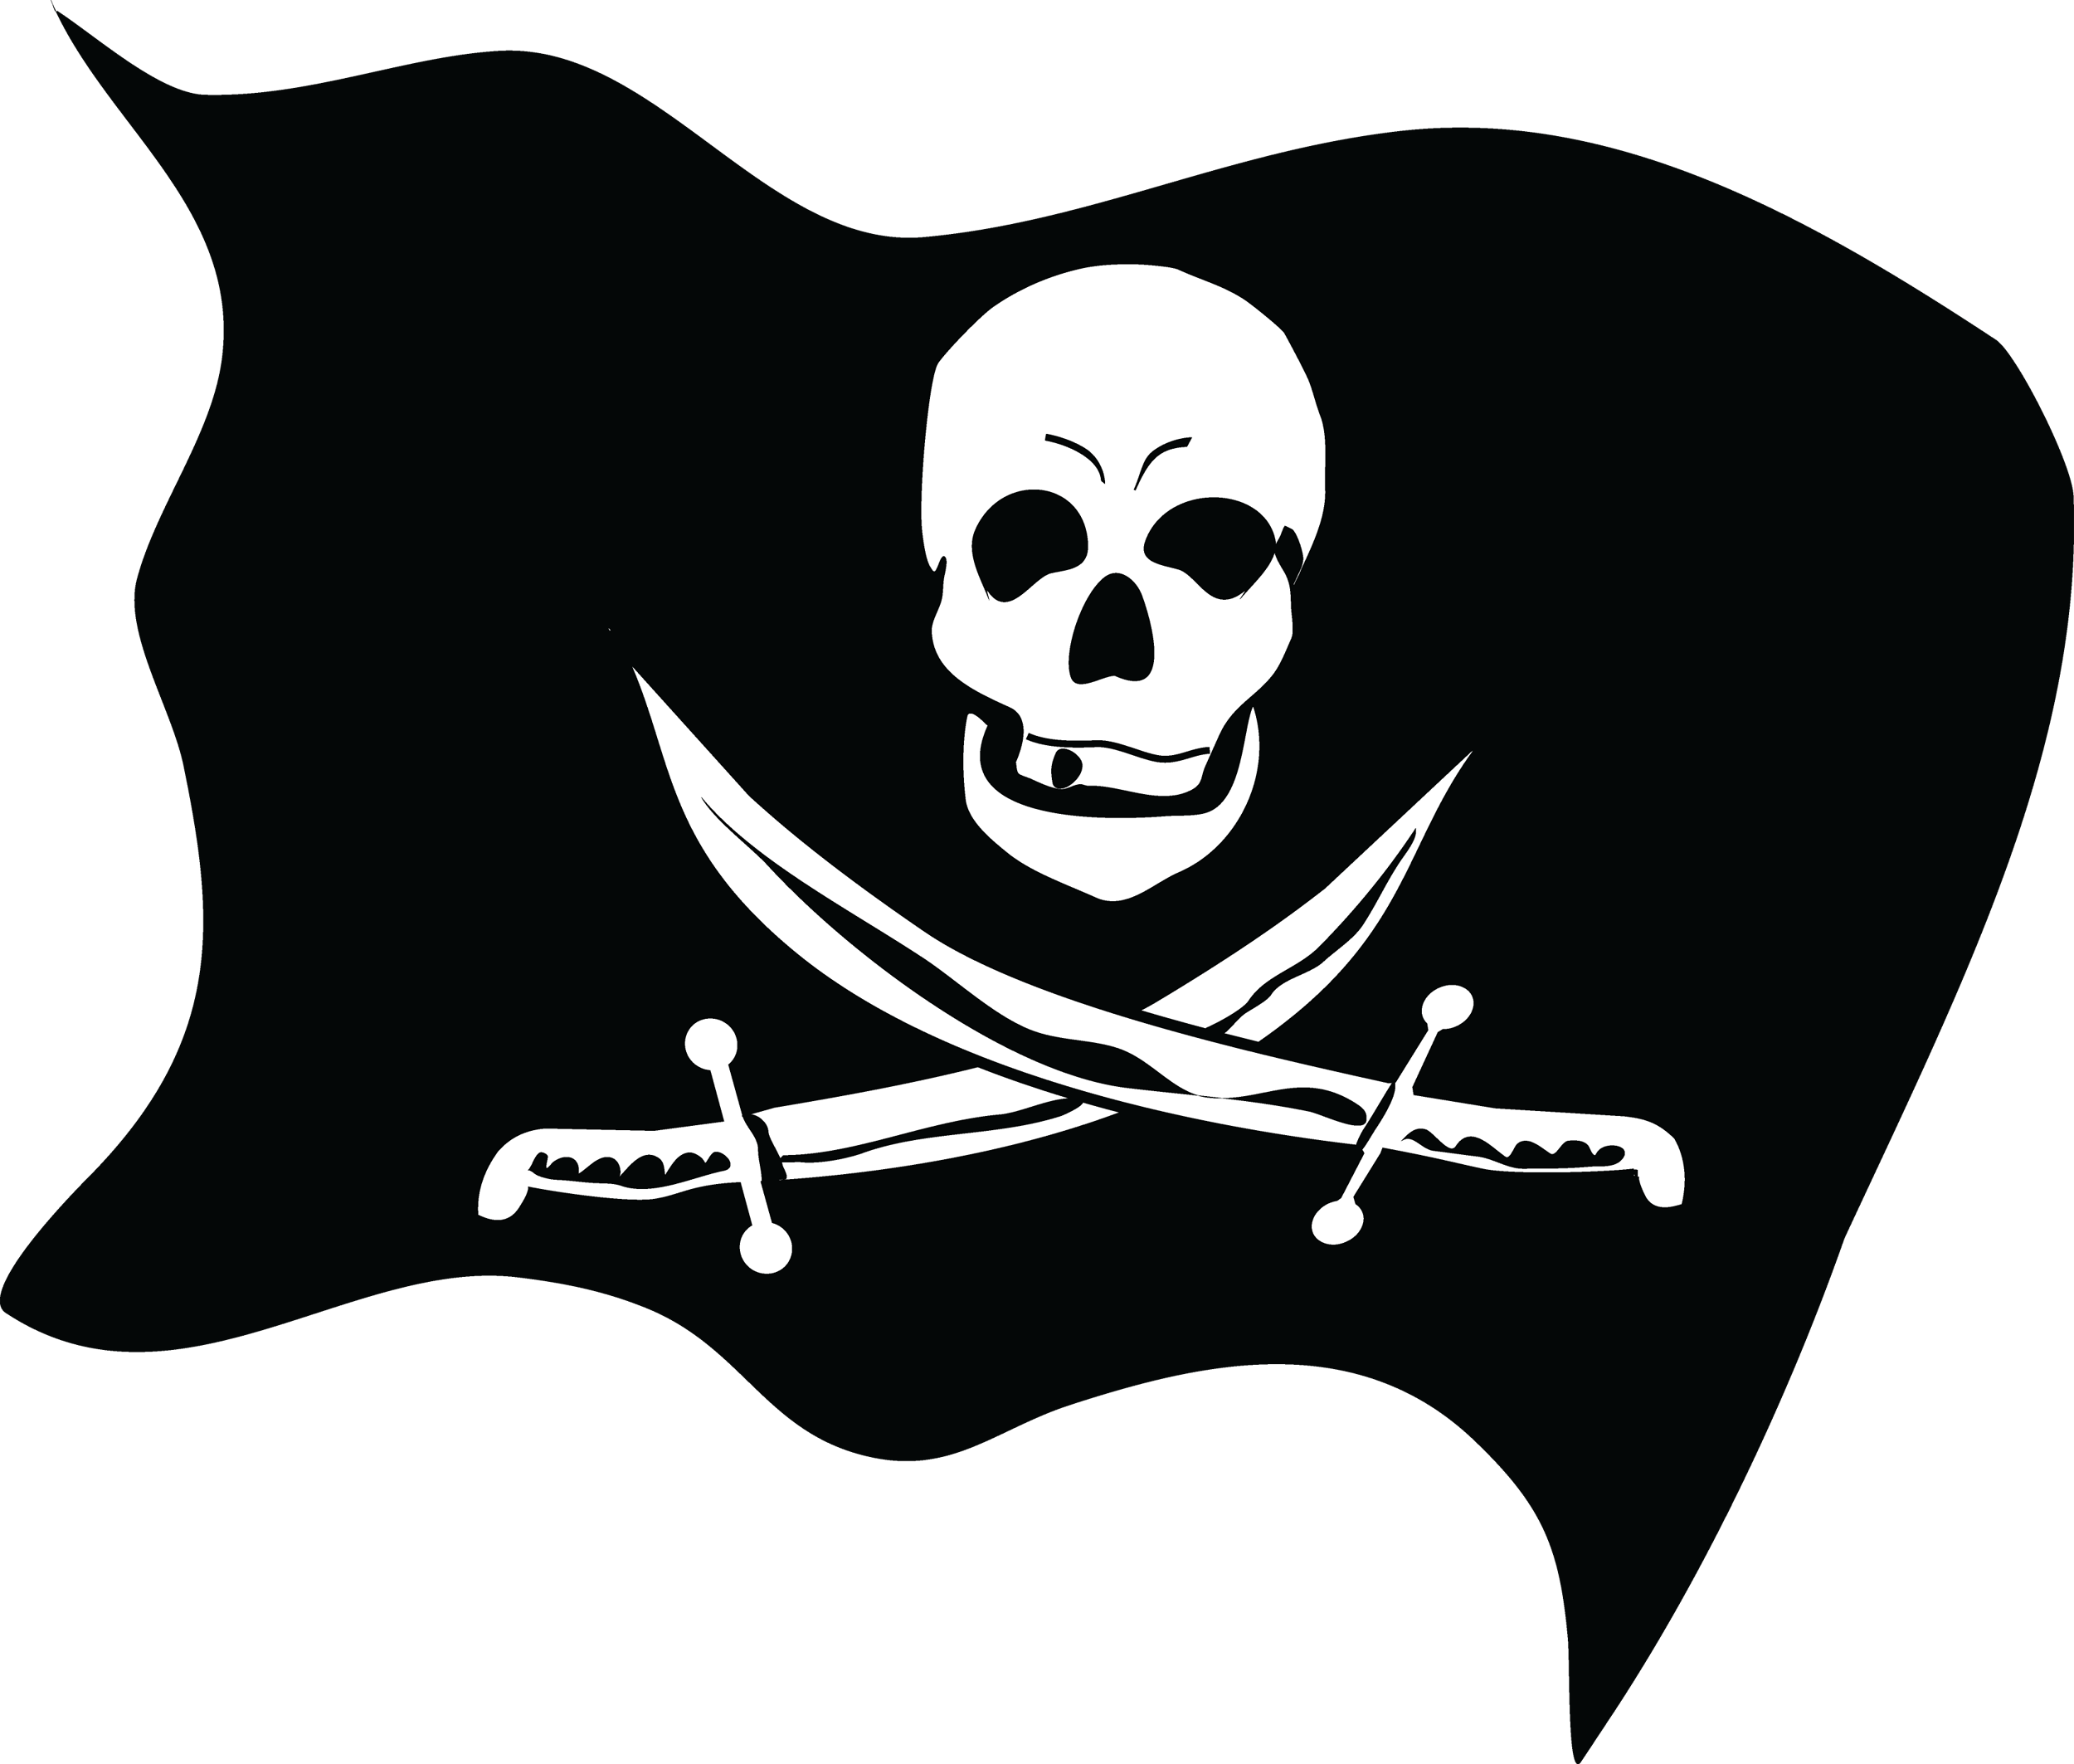 Pirate Flag Png Image Pirate Flag Pirates Flag